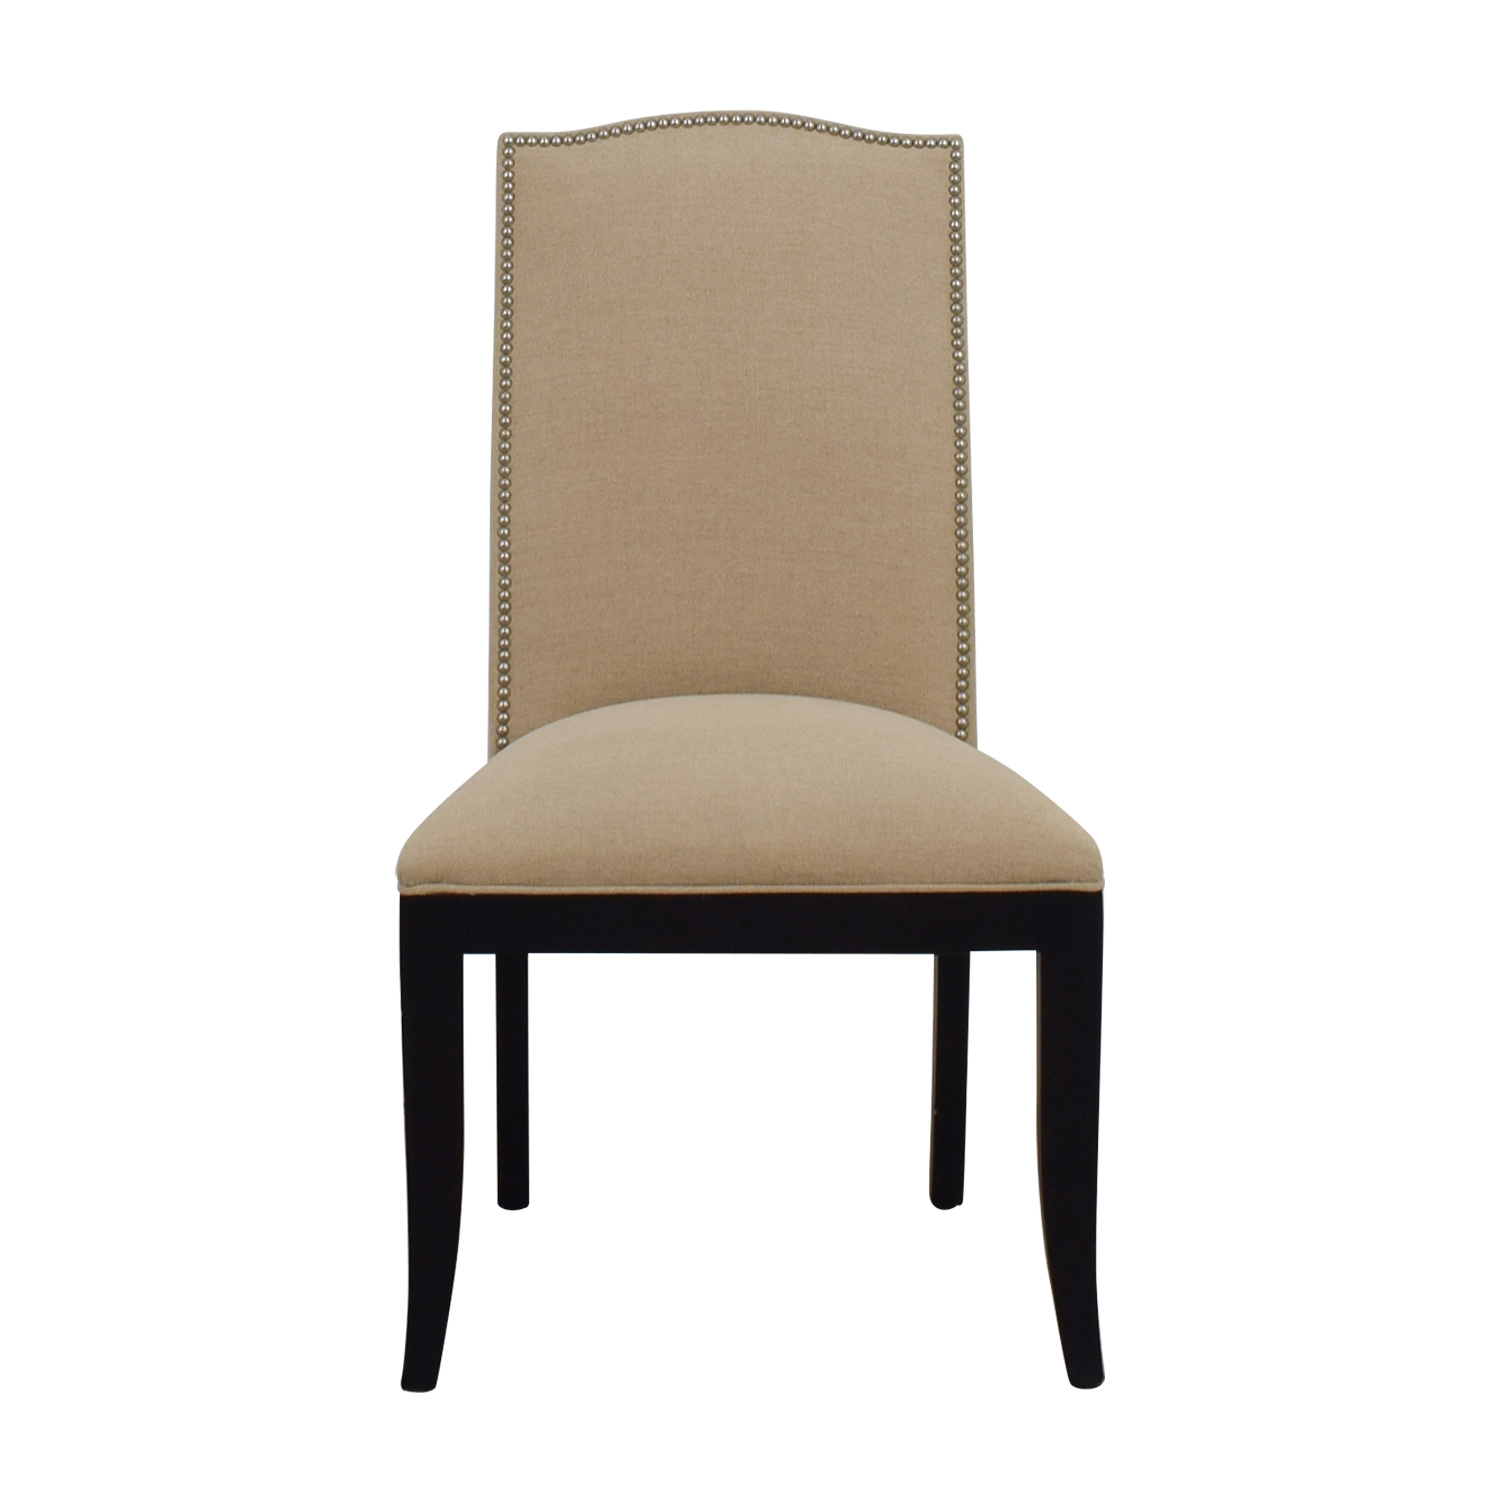 On Style Today 2020 11 06 Crate And Barrel Dining Room Chairs Here